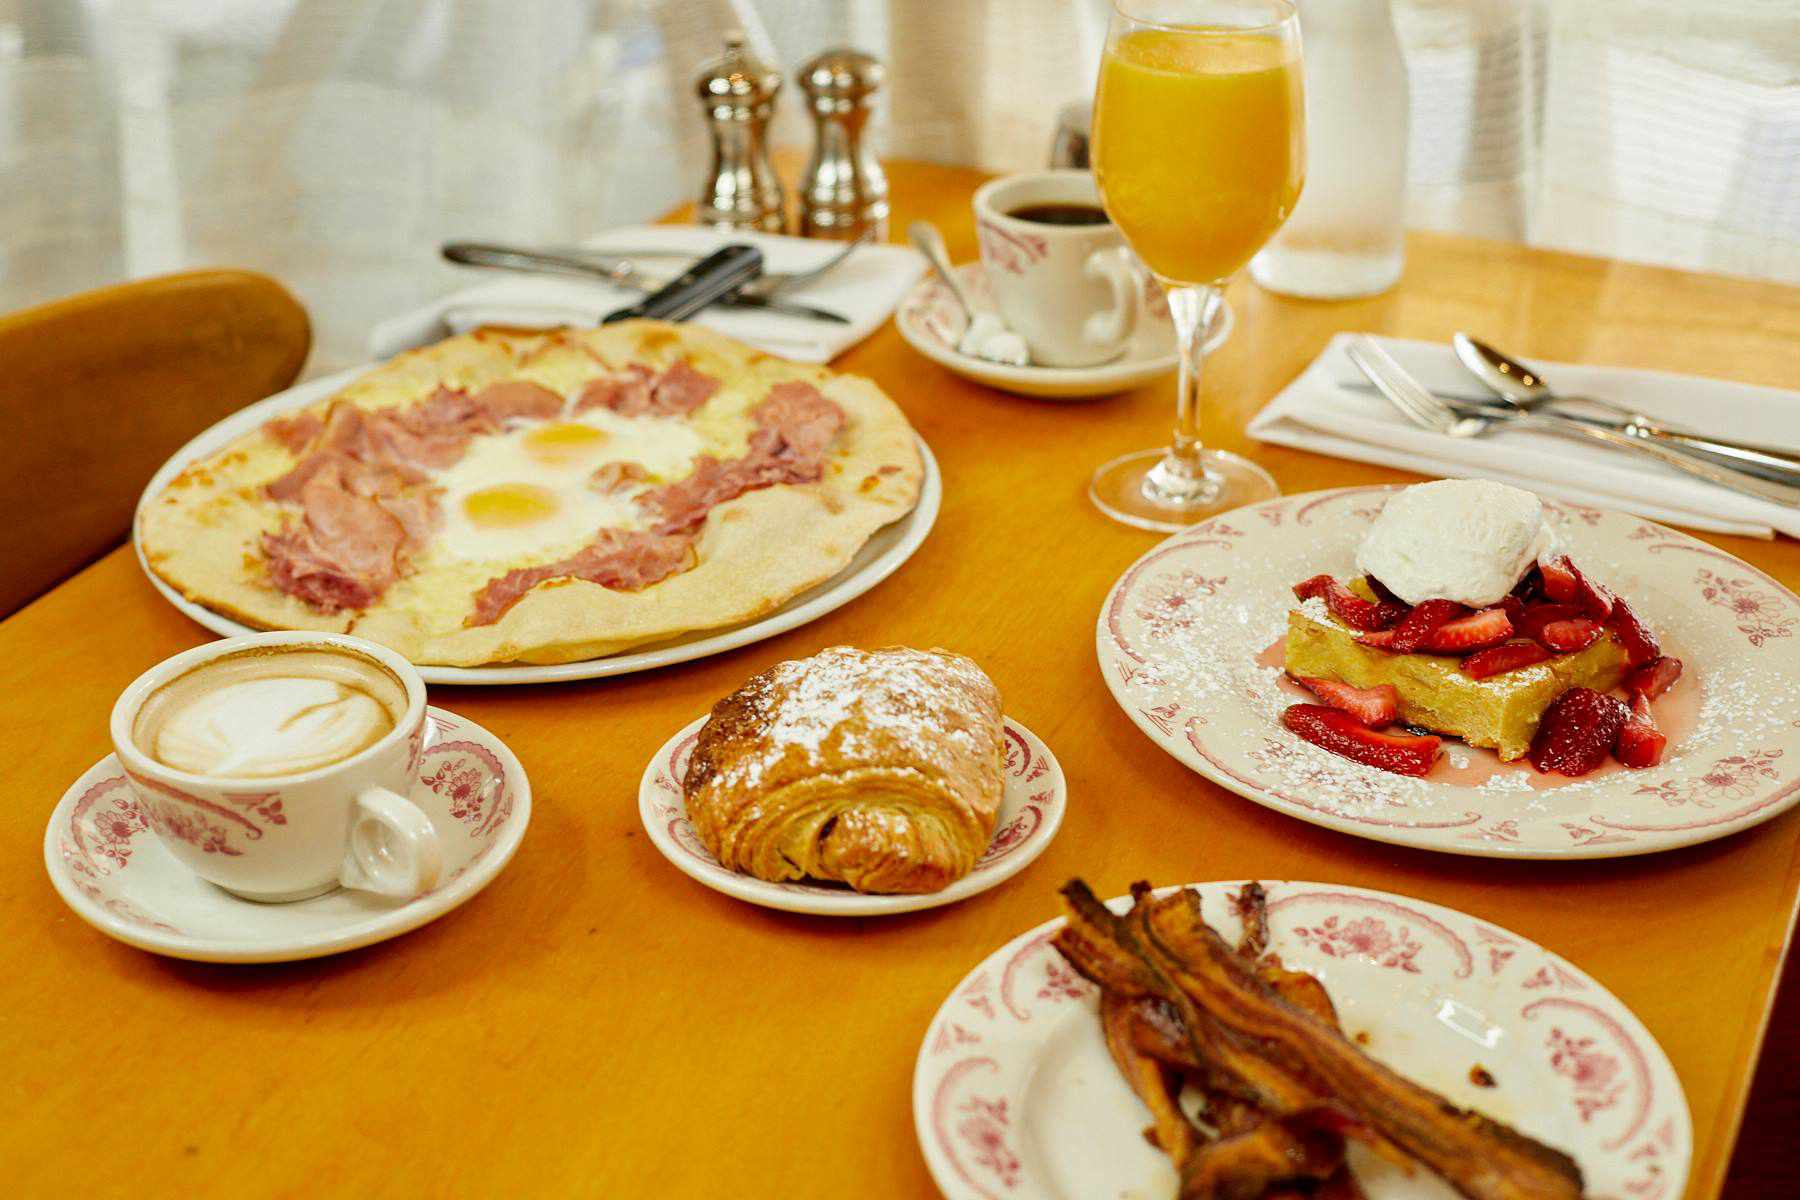 French toast with strawberries and whipped cream, a side of bacon, a croissant, a flatbread with two sunny-side-up eggs and ham, a latte, a cup of coffee, and a wine glass filled with orange juice on a table at Rose's cafe in san francisco